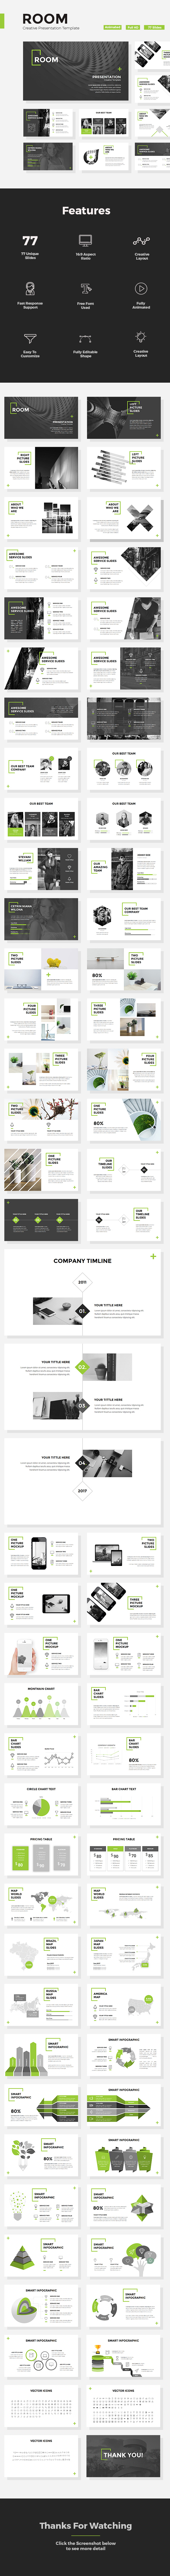 Room - Creative Keynote Template - Creative Keynote Templates